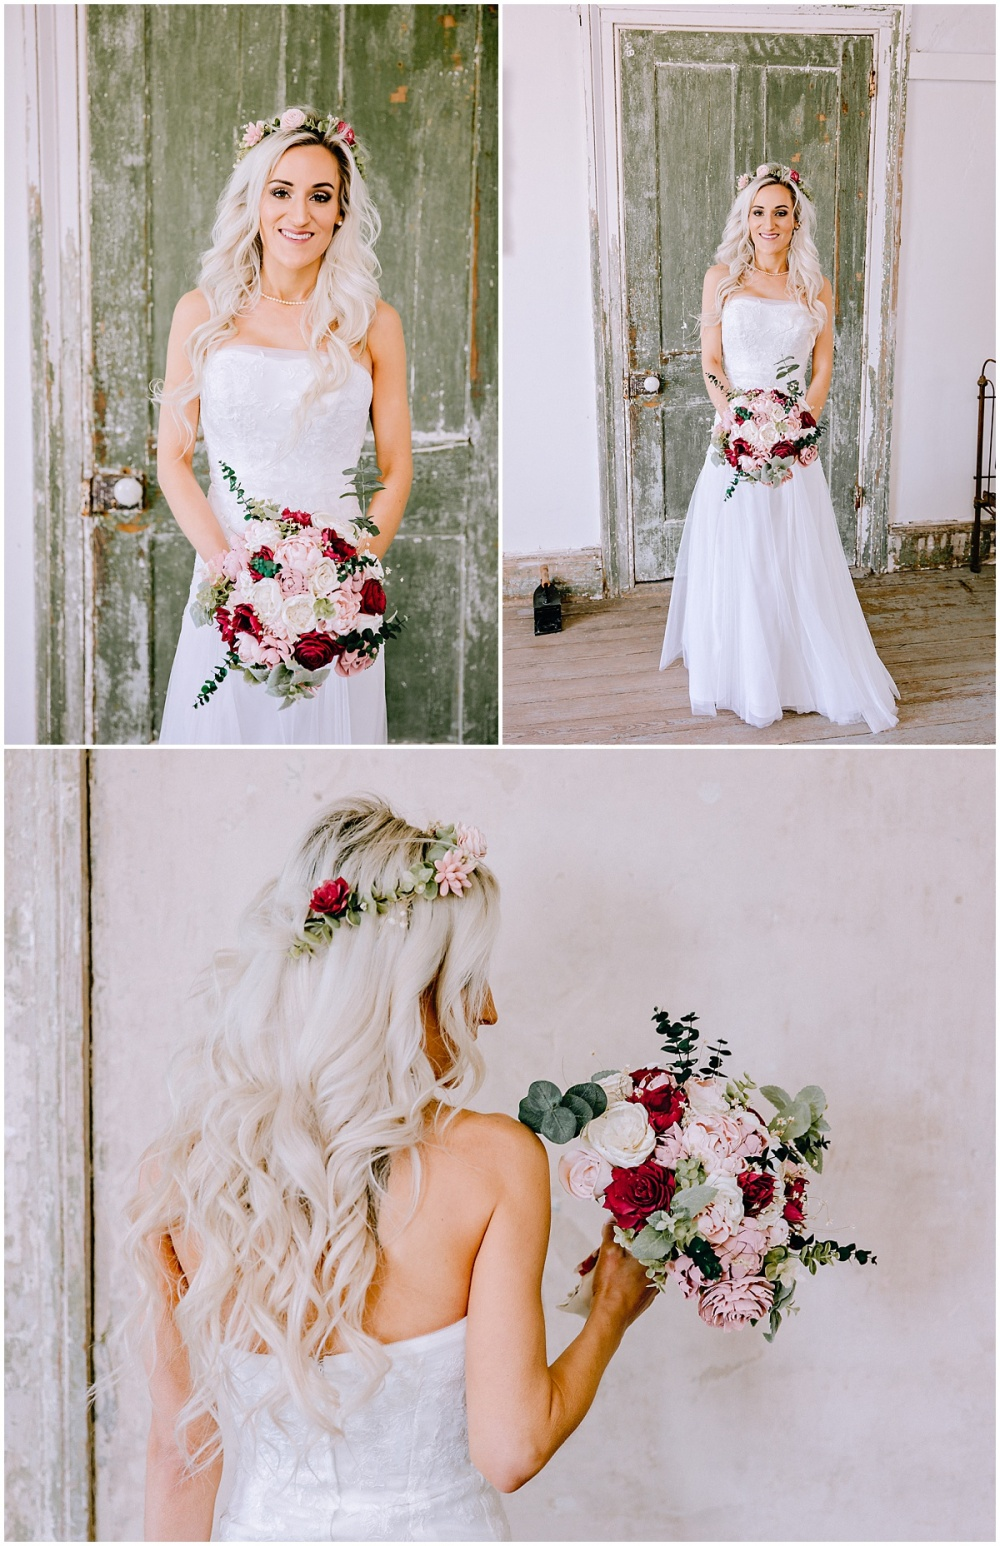 Bridal-Session-Whitehall-Polley-Mansion-LaVernia-Texas-Carly-Barton-Photography_0009.jpg